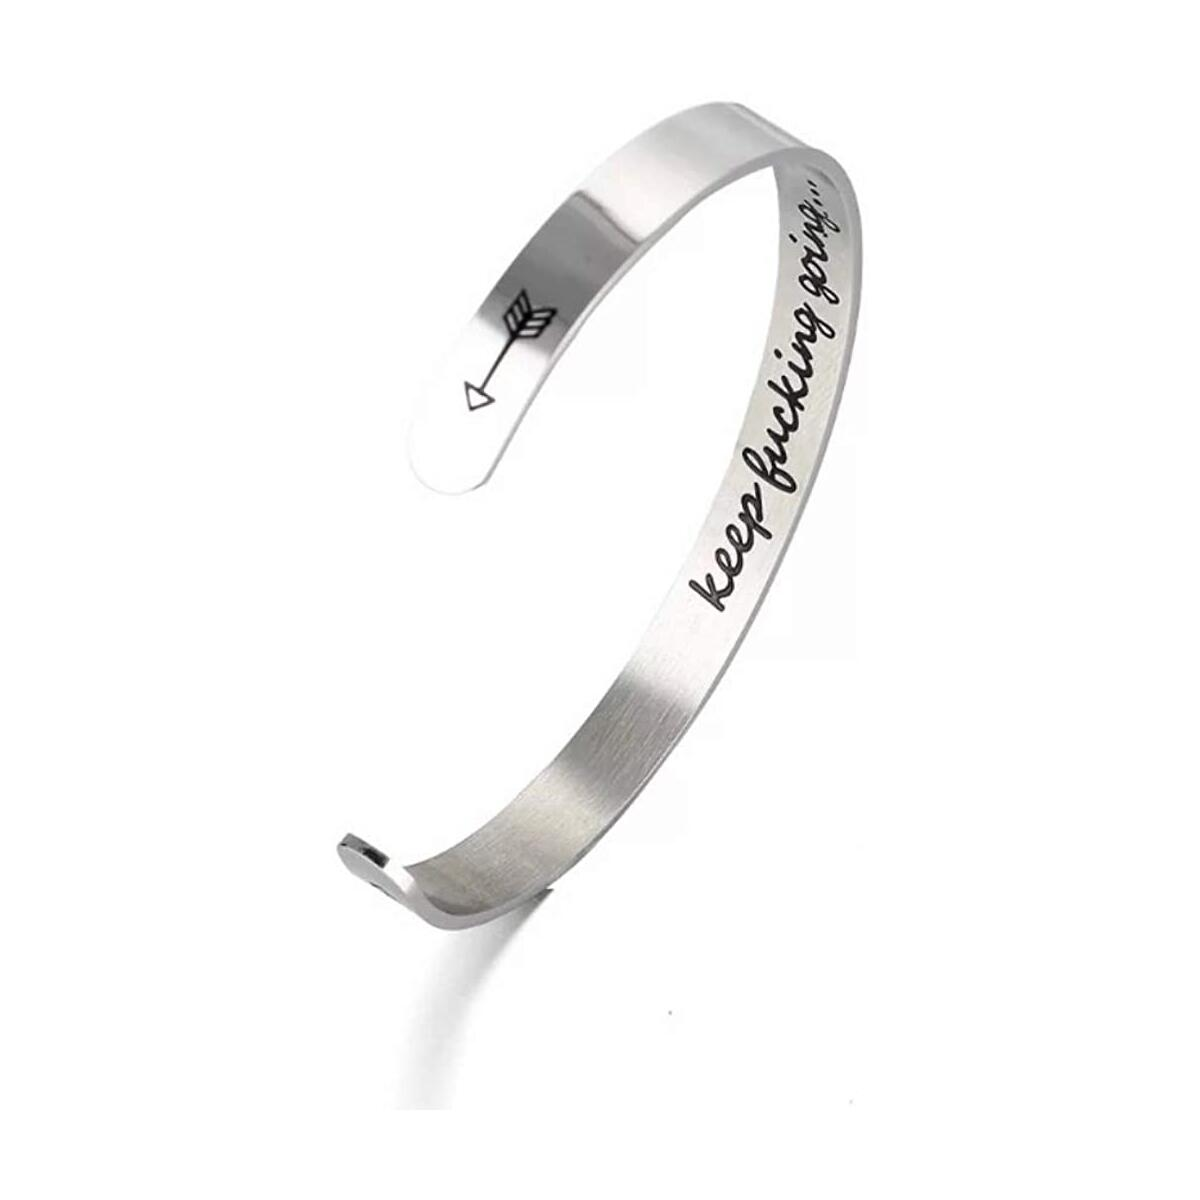 Inspirational Bracelets for Women - Best Friend Bracelets - Thinking Of You Gift - BFF Gifts - Cuff Bracelets For Women - Encouragement Gifts For Women - You Got This - Engraved Bracelets For Women